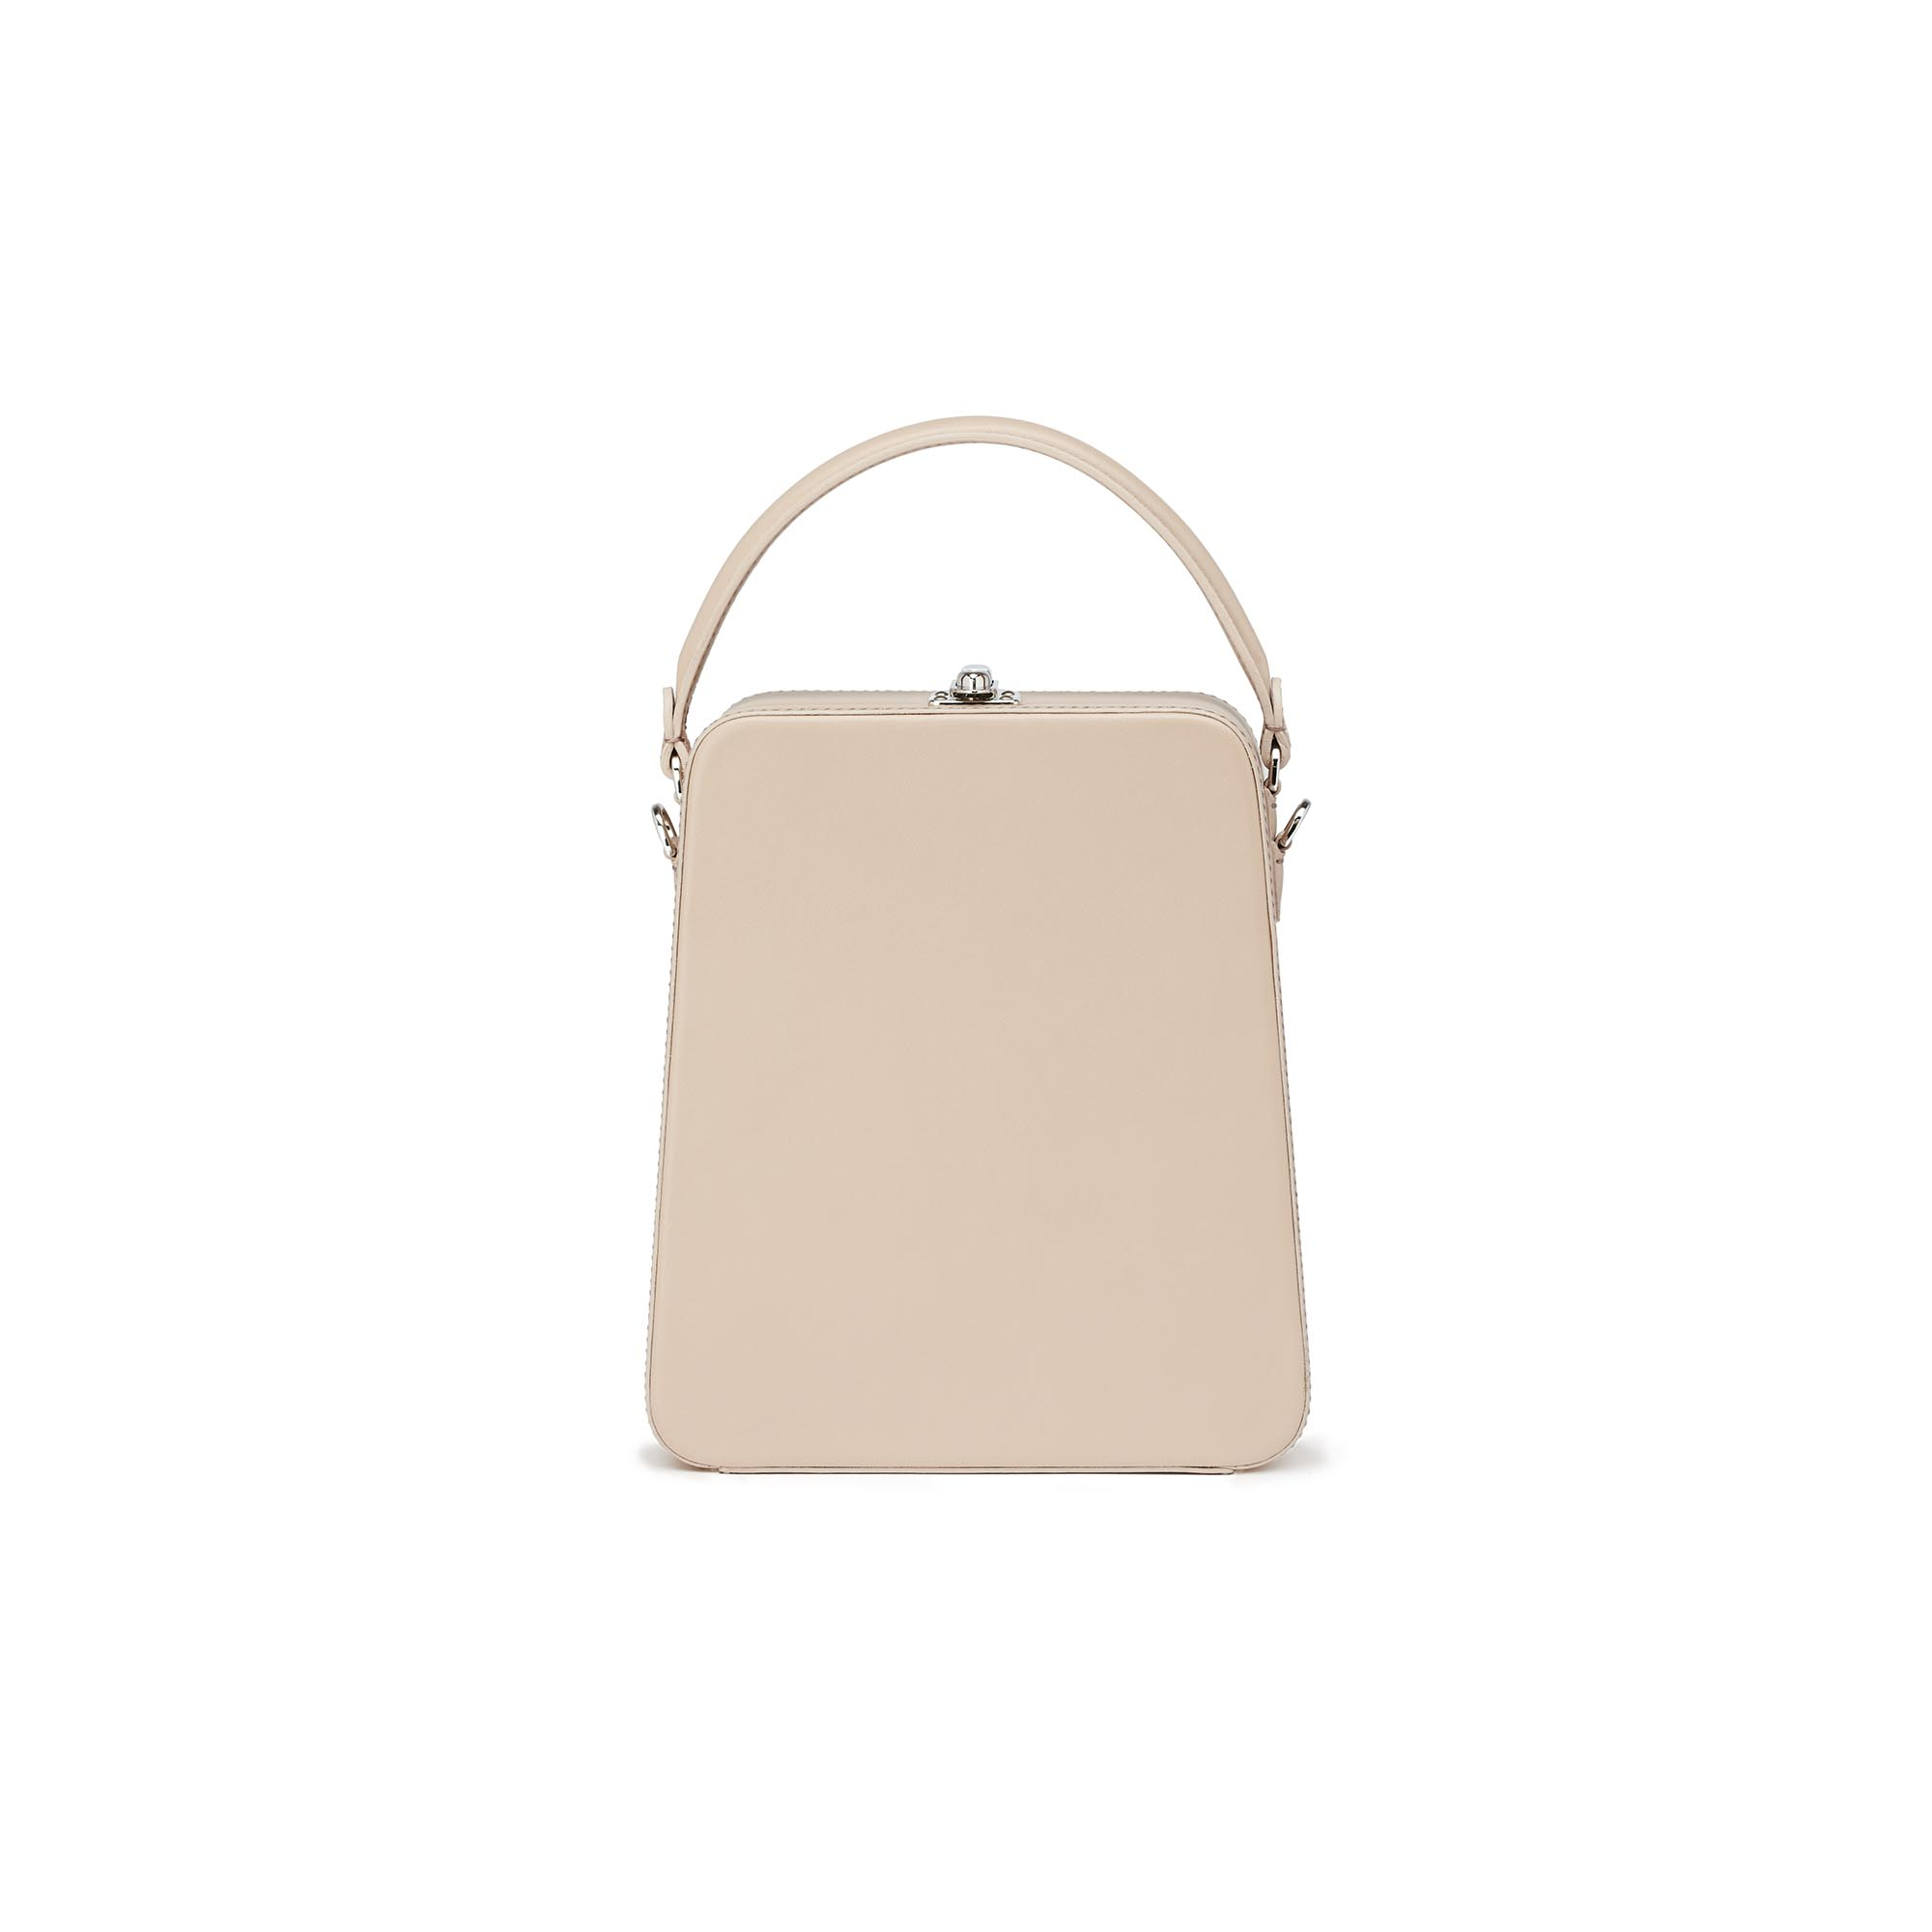 Tall-Bertoncina-nude-french-calf-bag-Bertoni-1949_01